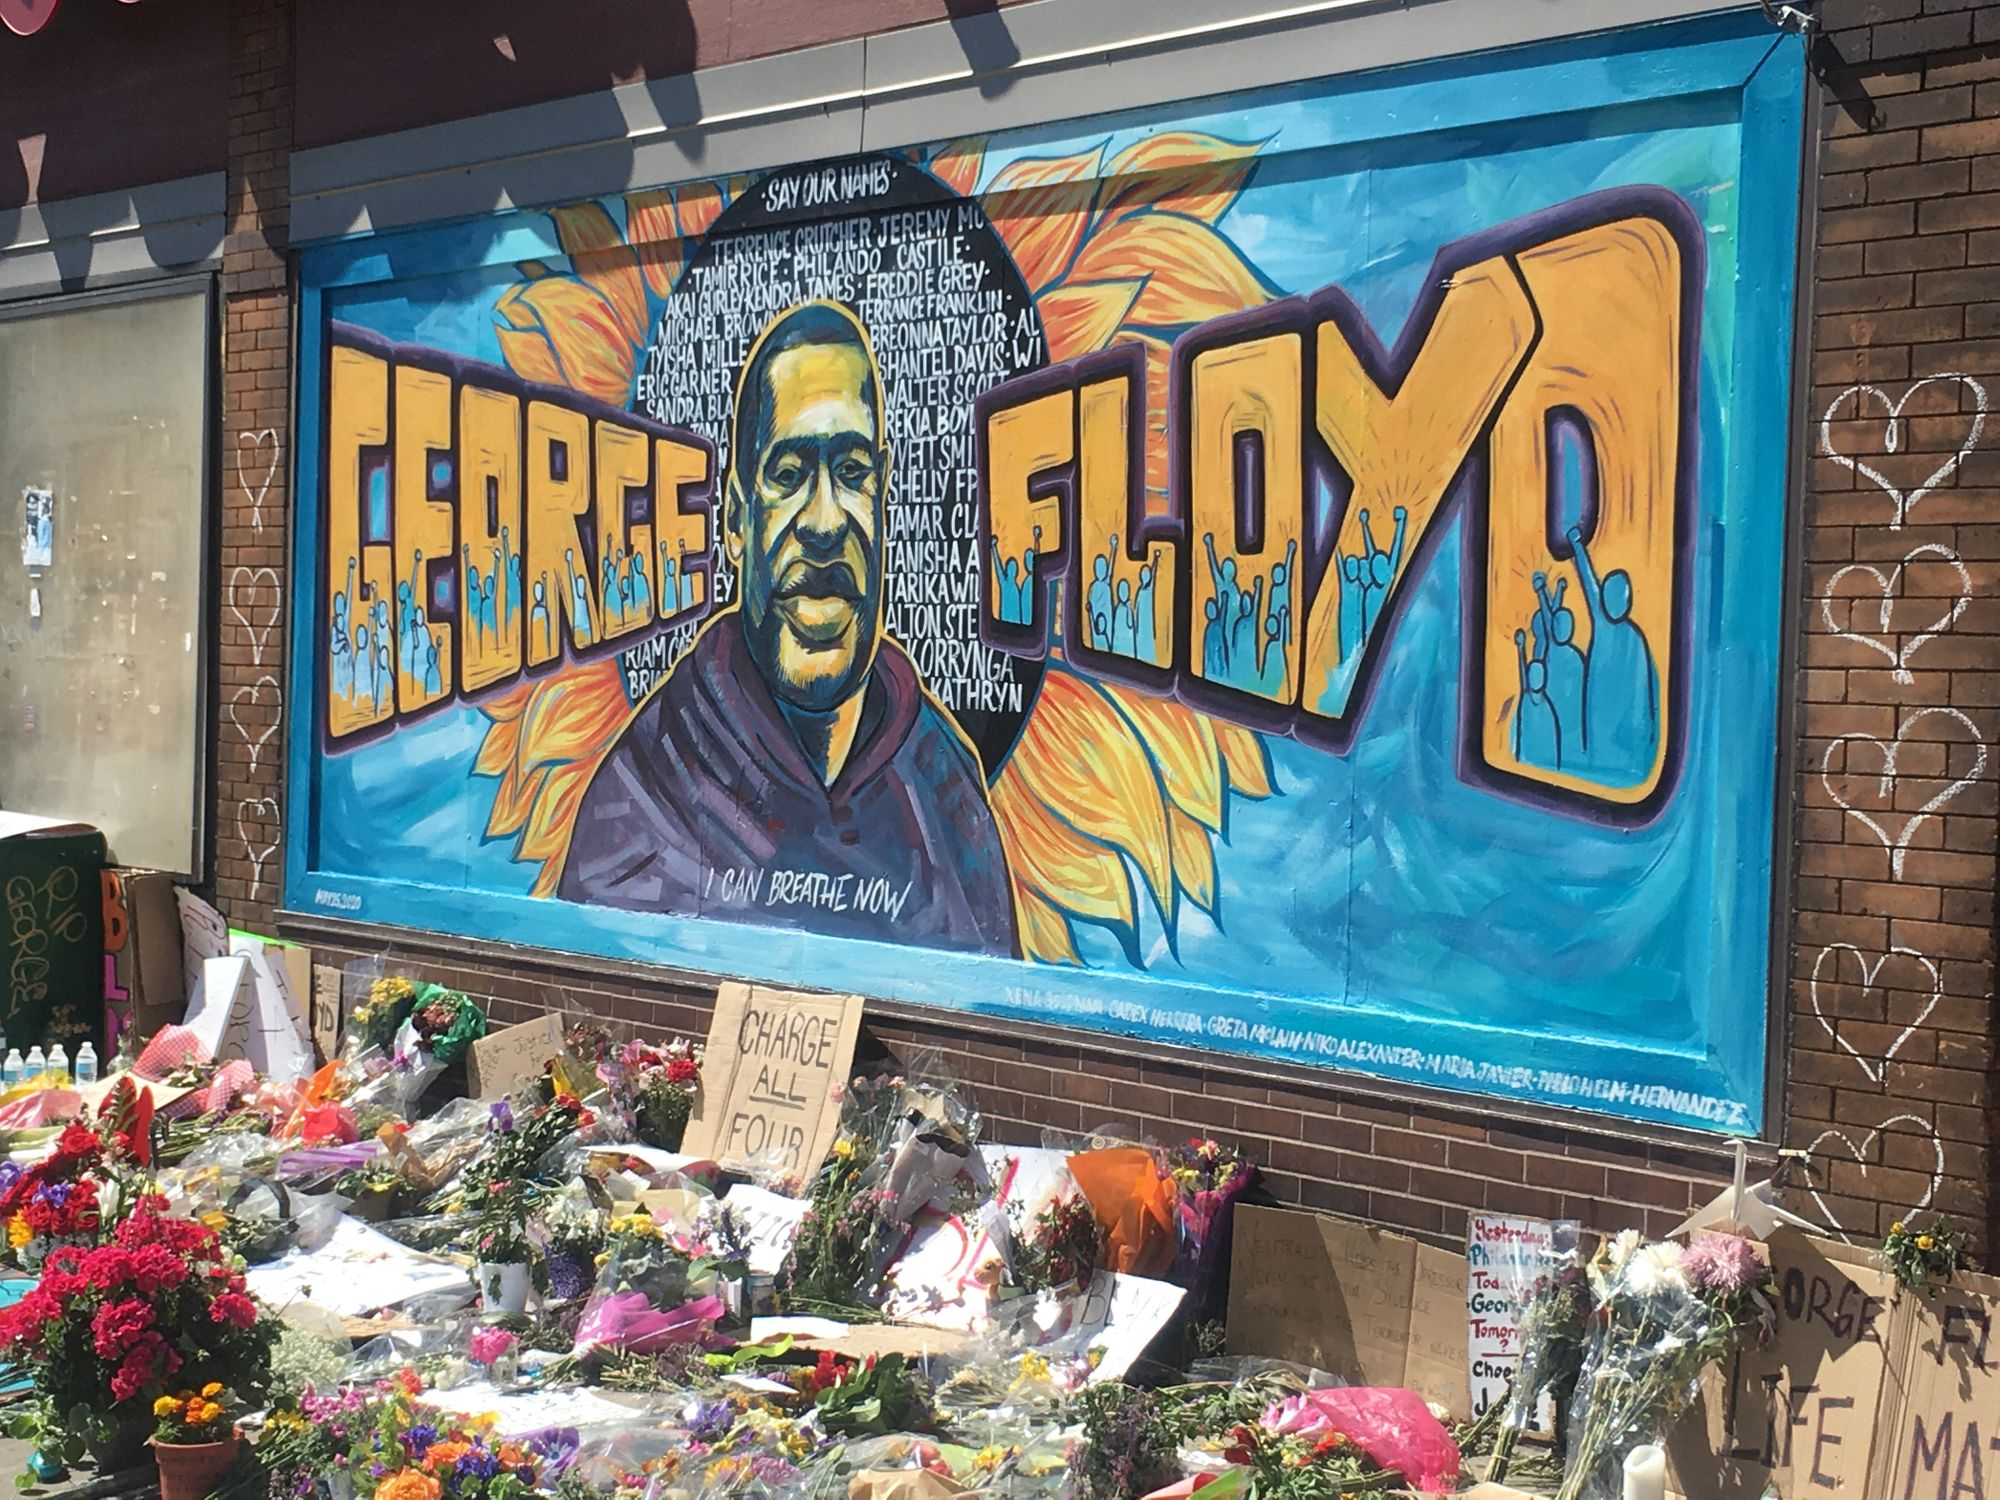 Coming Out of Minneapolis Tragedy, the Community Creates a Healing Public Space